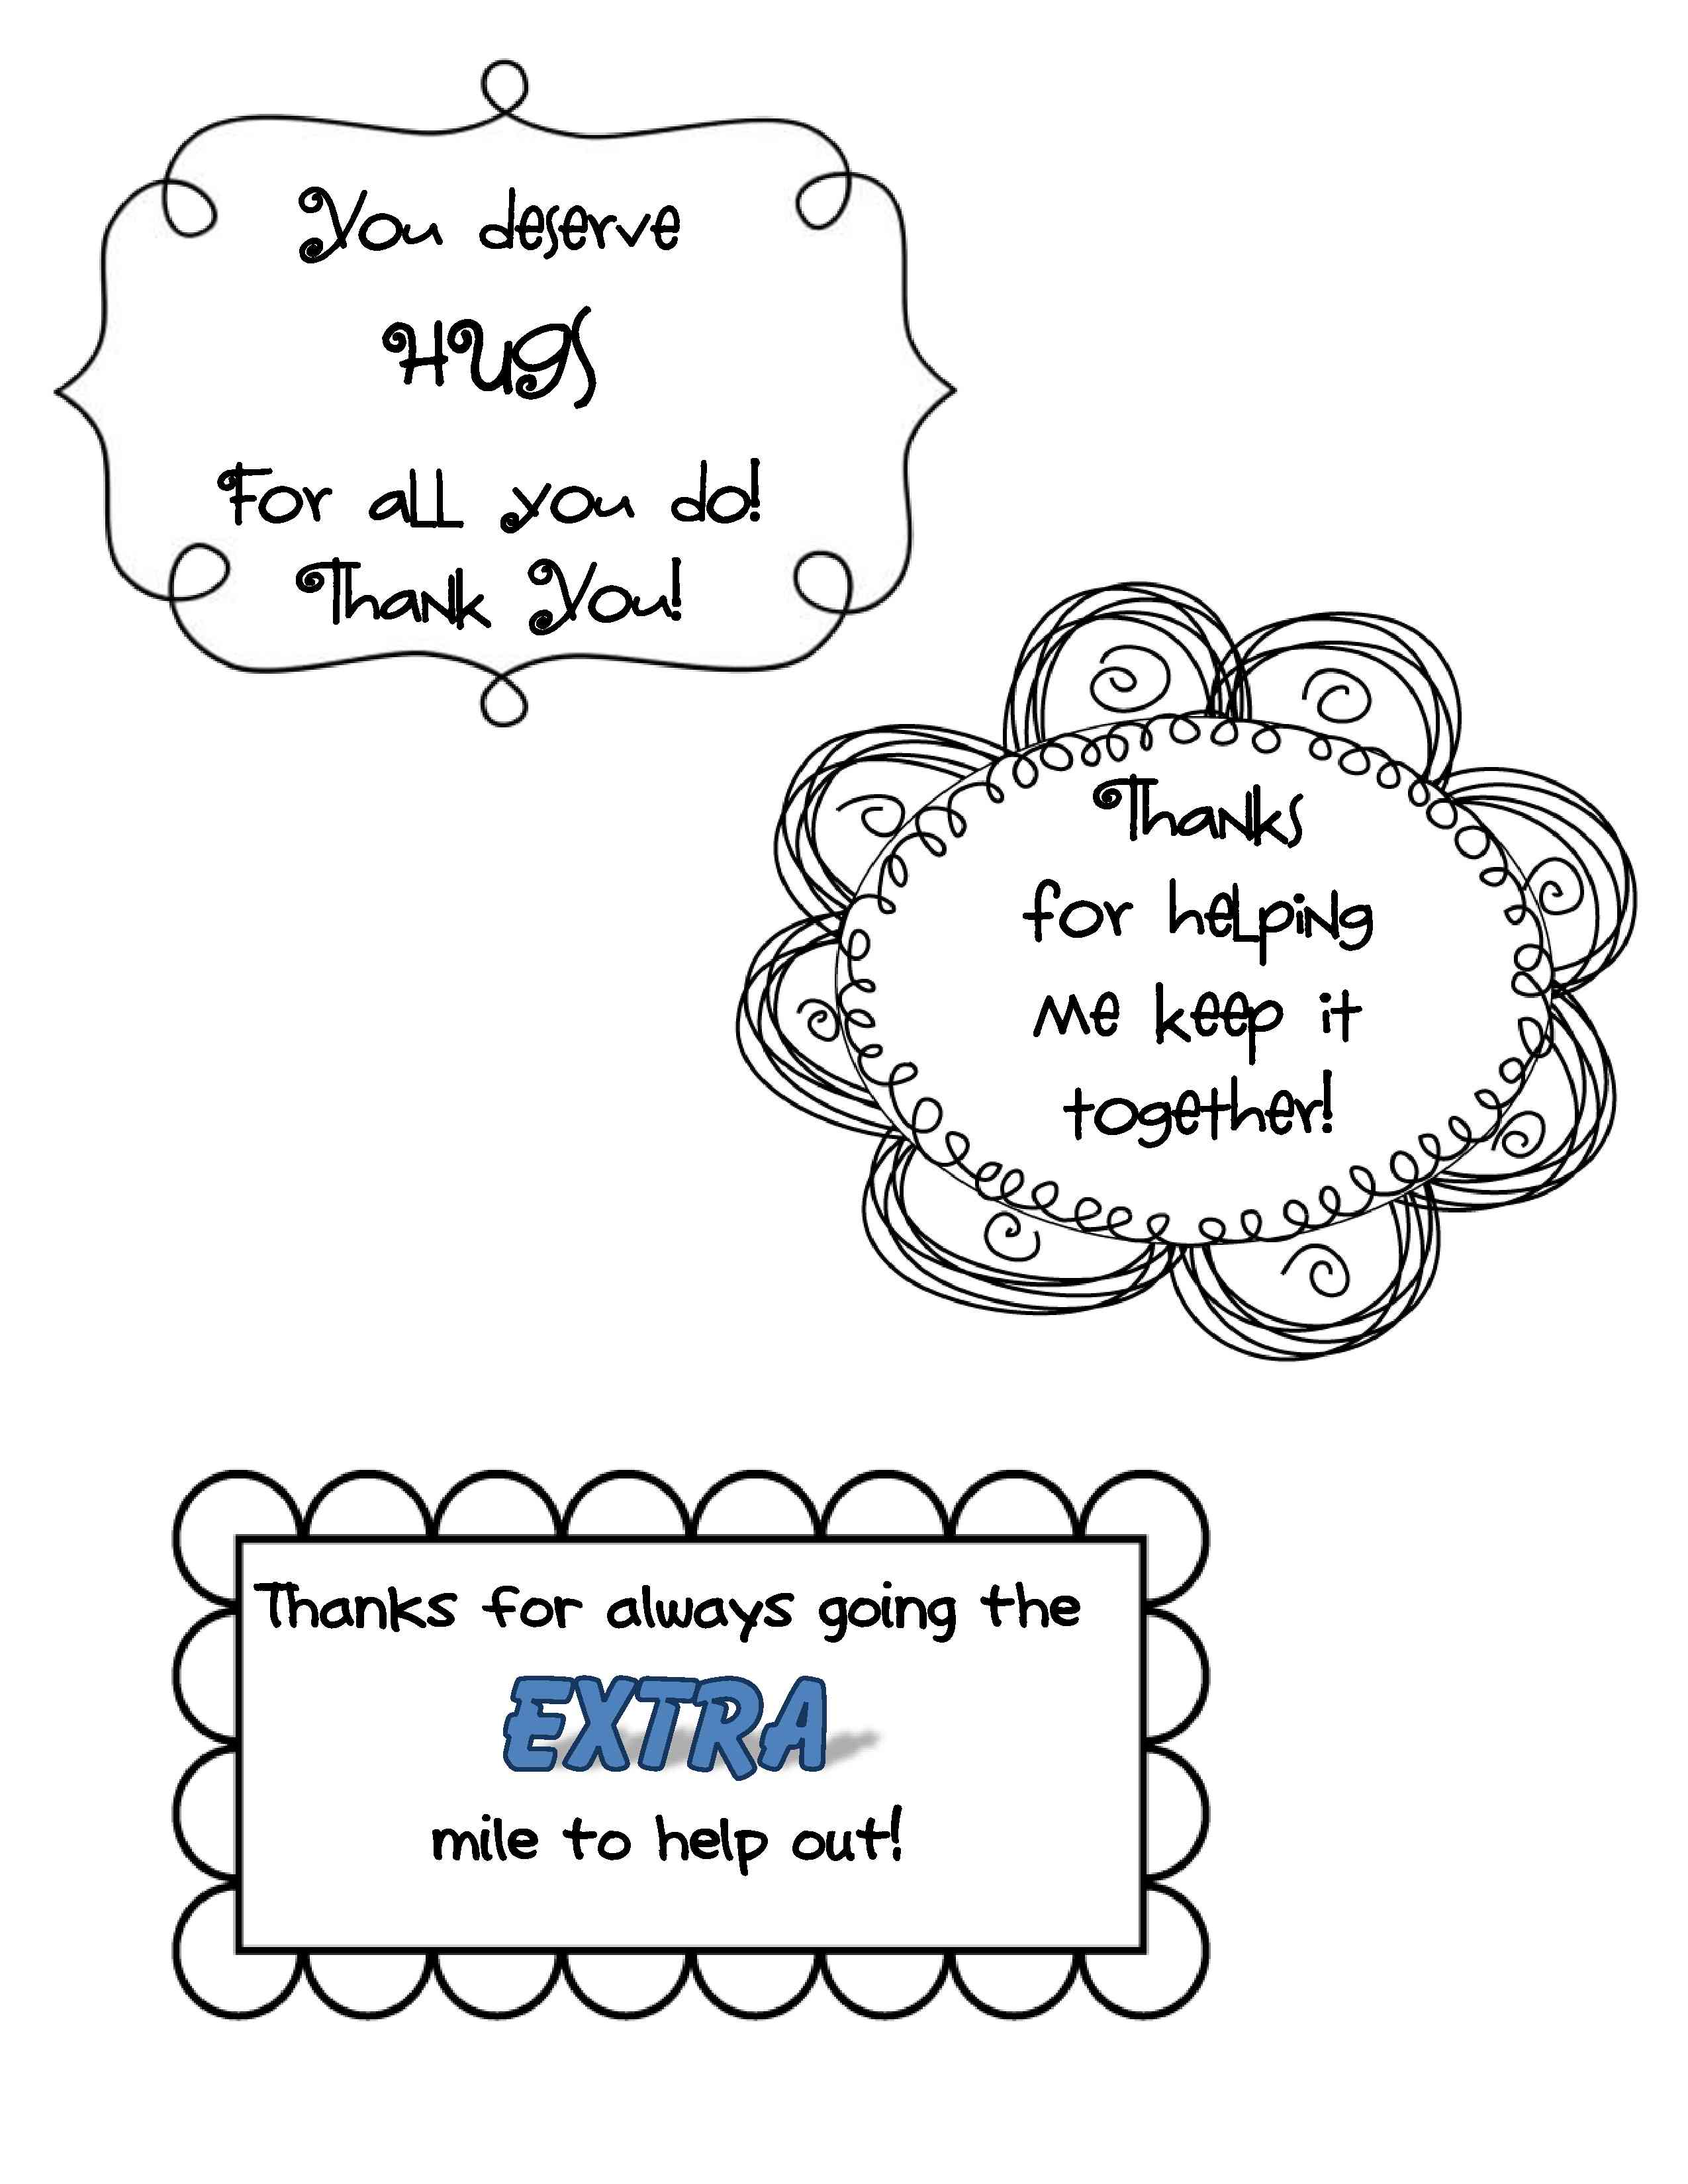 Thanks for going the extra mile gum clipart jpg library Quick and Easy Thank-You Gifts for Classroom Volunteers ... jpg library